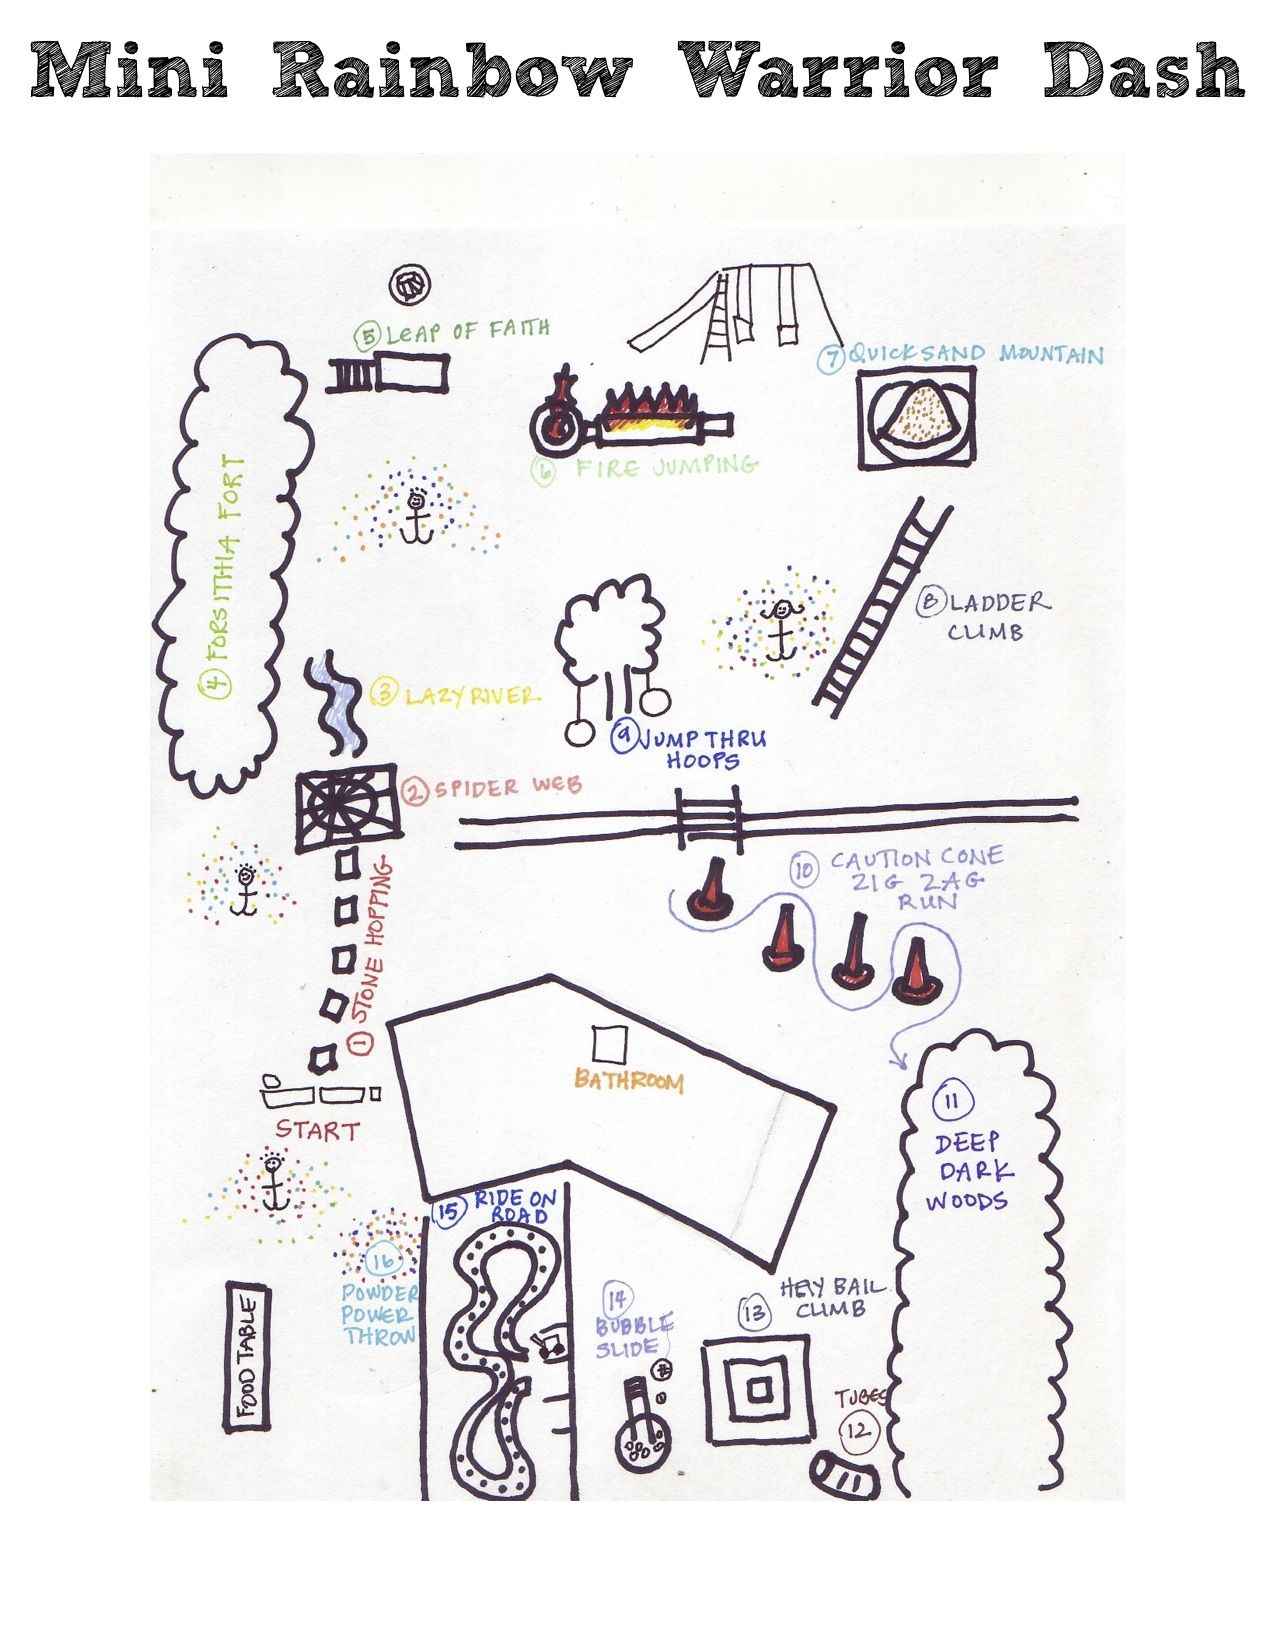 Kid Friendly Obstacle Course Warrior Dash Map